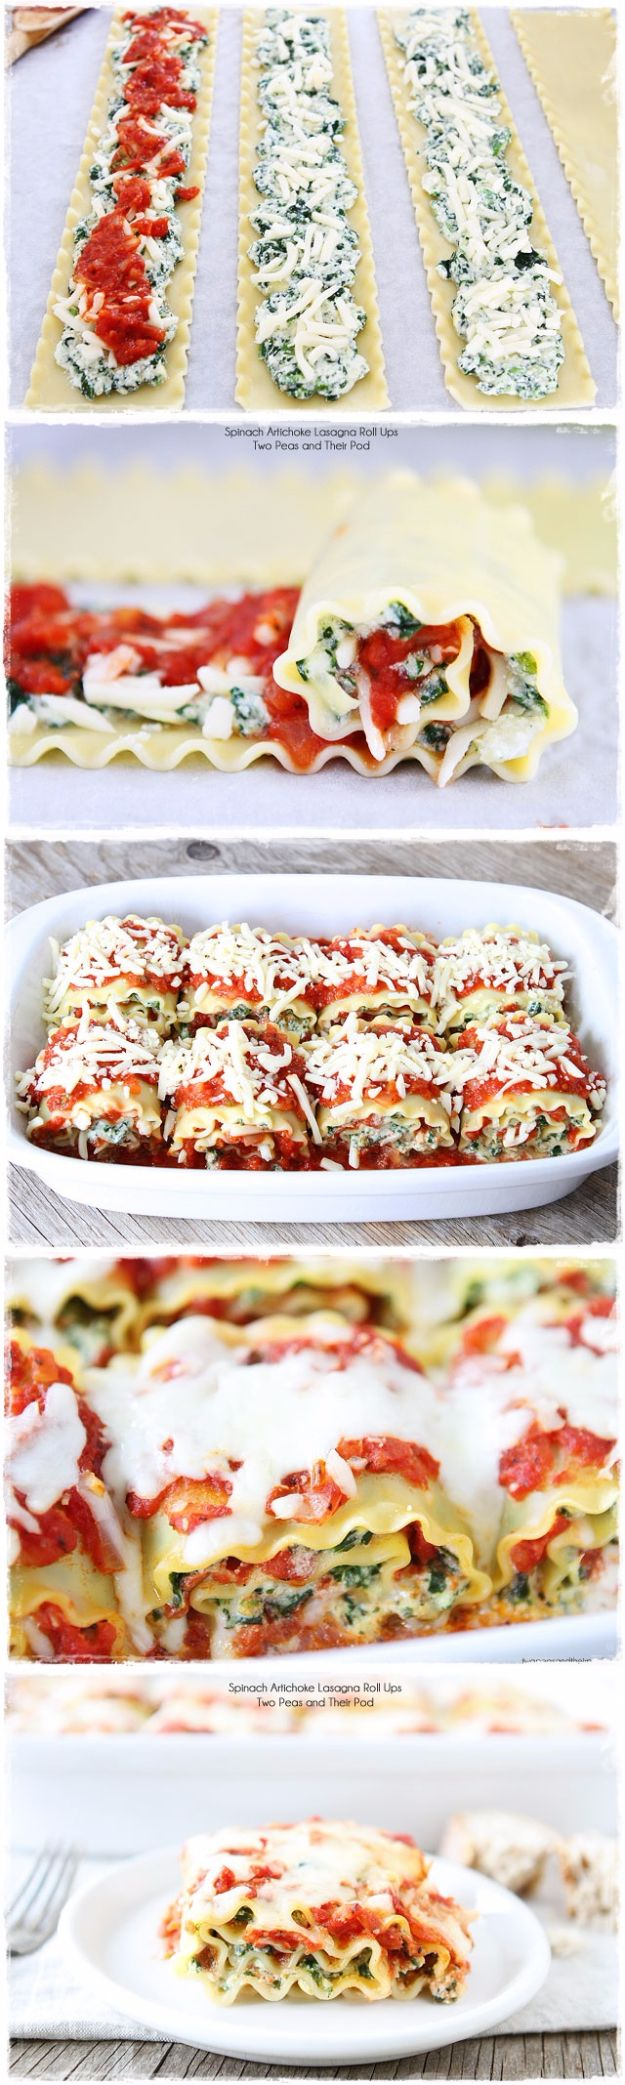 Best Easter Dinner Recipes - Spinach Artichoke Lasagna Roll Ups - Easy Recipe Ideas for Easter Dinners and Holiday Meals for Families - Side Dishes, Slow Cooker Recipe Tutorials, Main Courses, Traditional Meat, Vegetable and Dessert Ideas - Desserts, Pies, Cakes, Ham and Beef, Lamb - DIY Projects and Crafts by DIY JOY